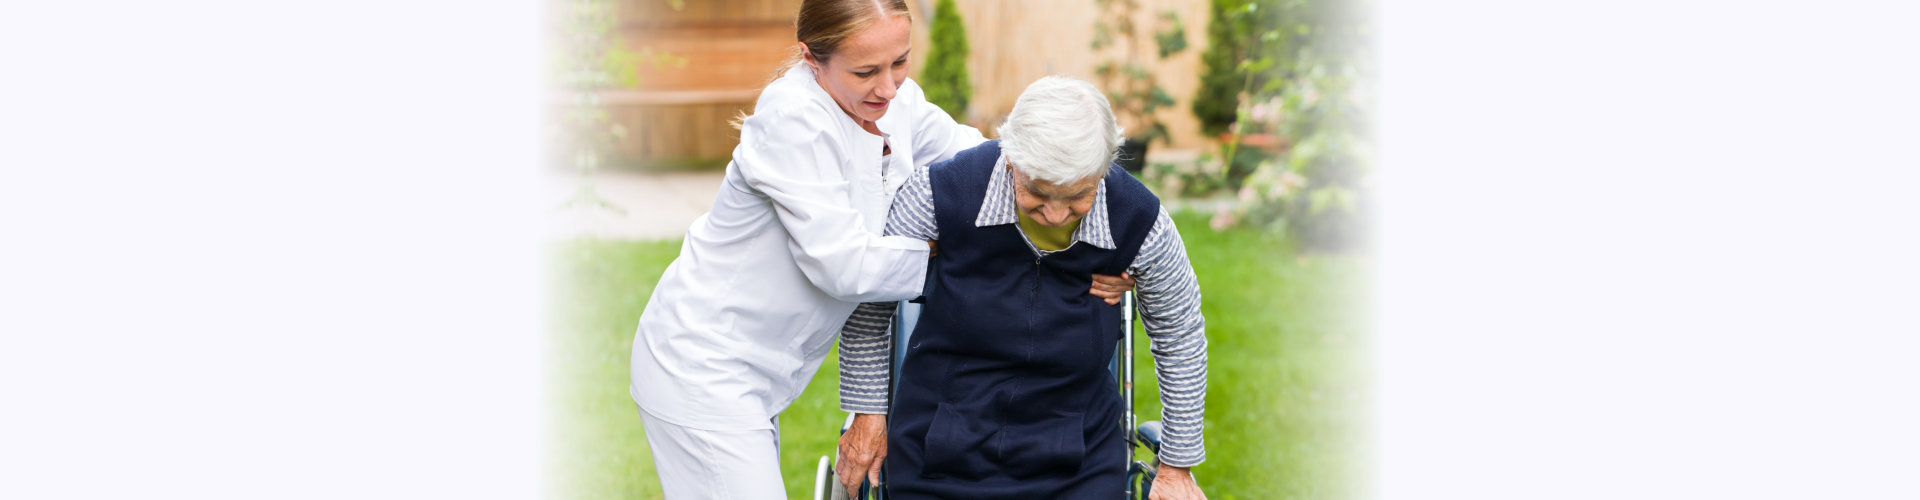 carer helping the elderly woman